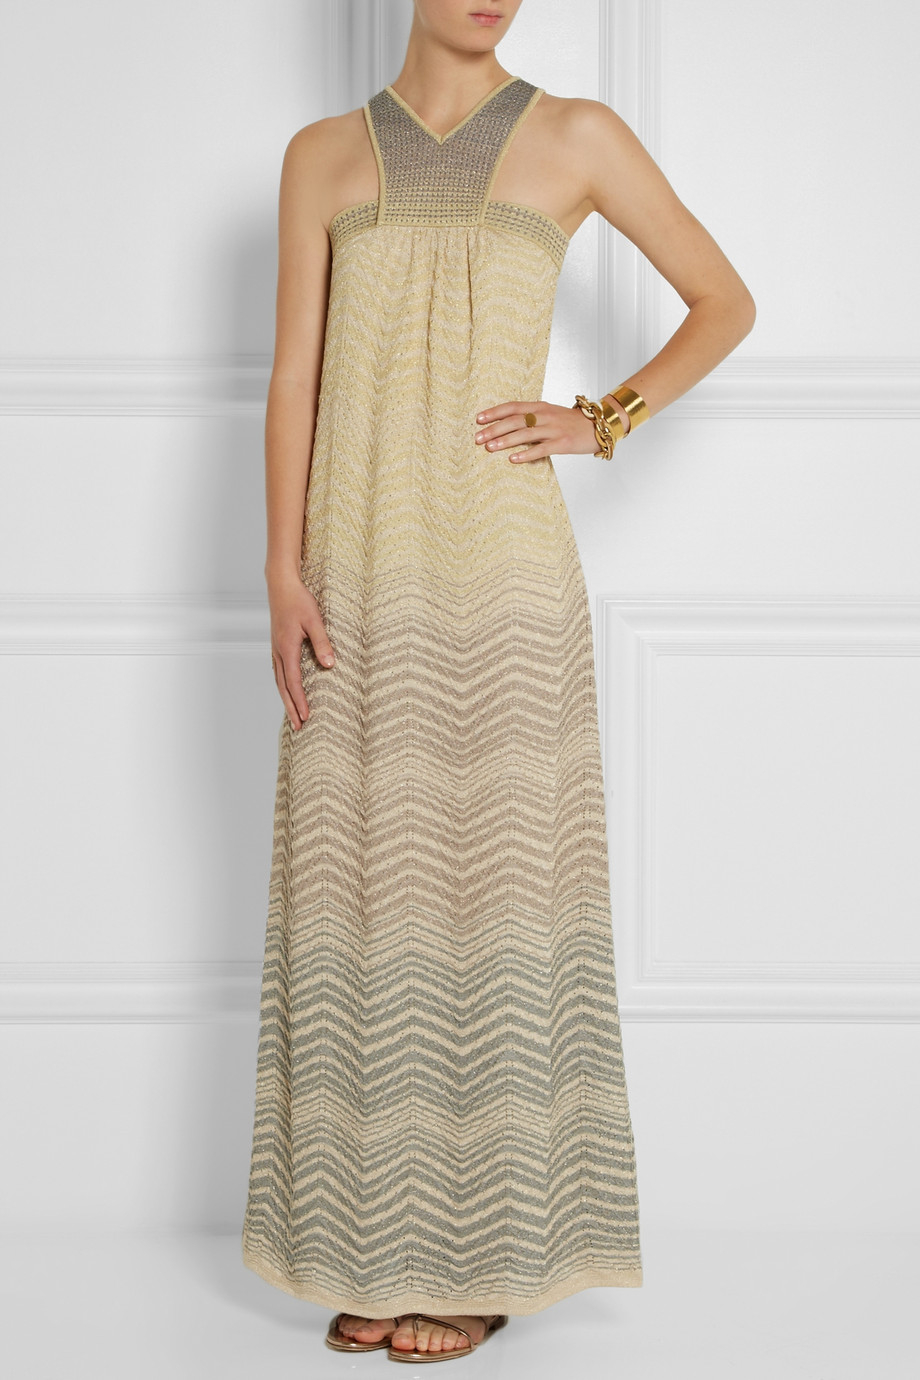 Knit Maxi Dress Pattern : M missoni Crochet-Knit Maxi Dress in Yellow Lyst